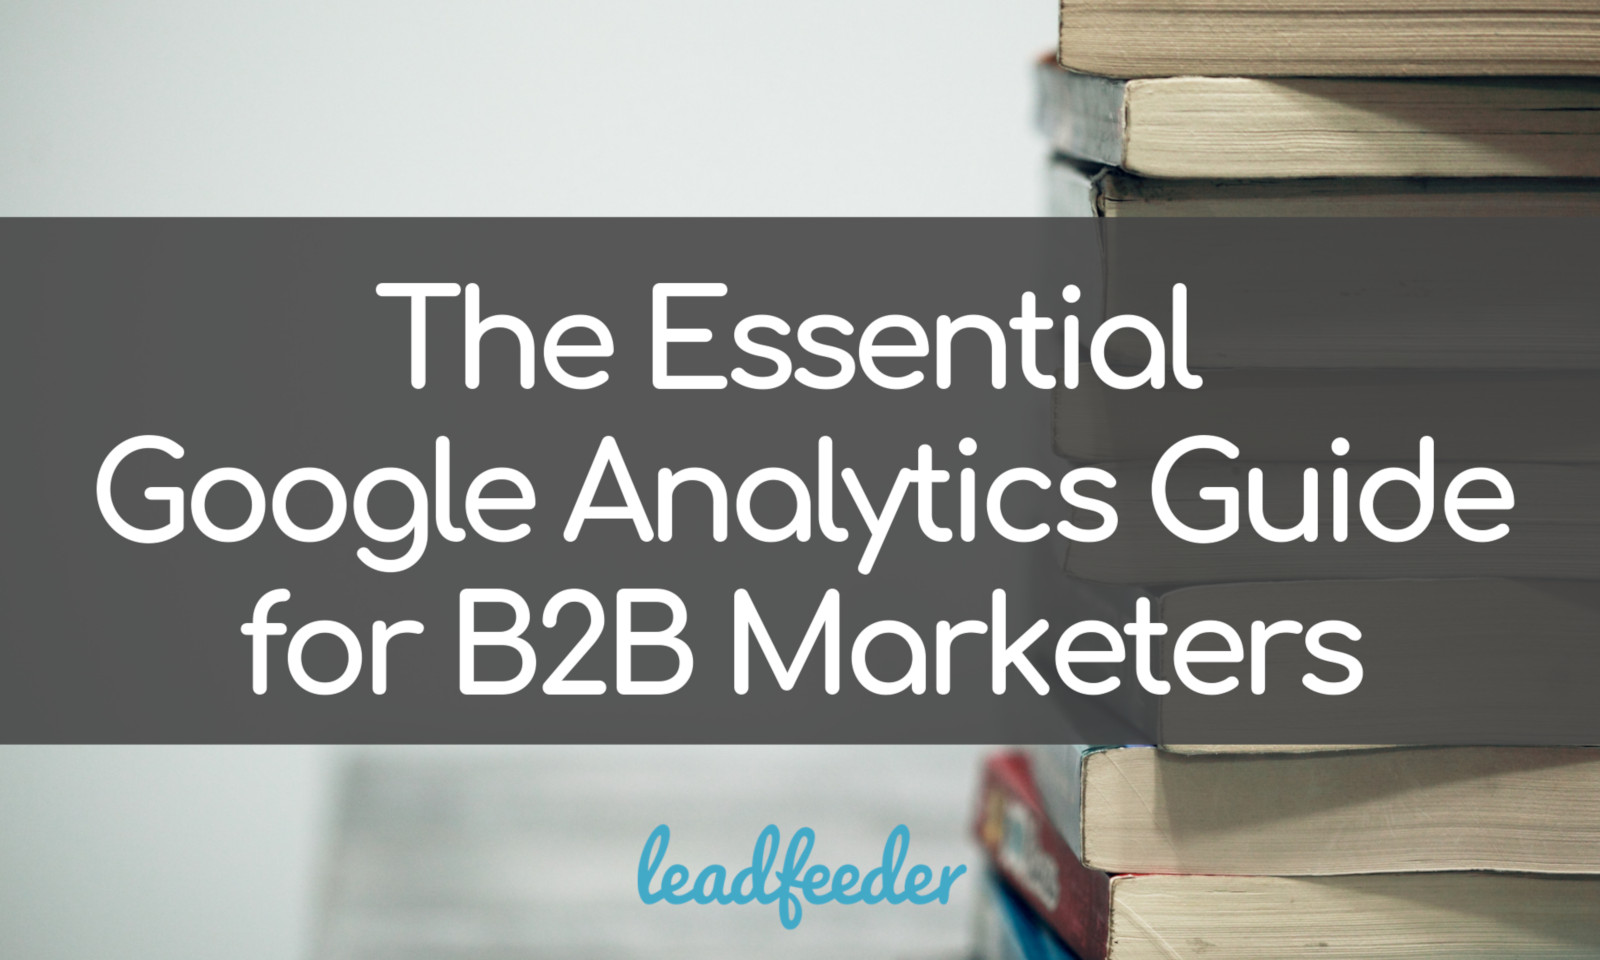 The Essential Google Analytics Guide for B2B Marketers